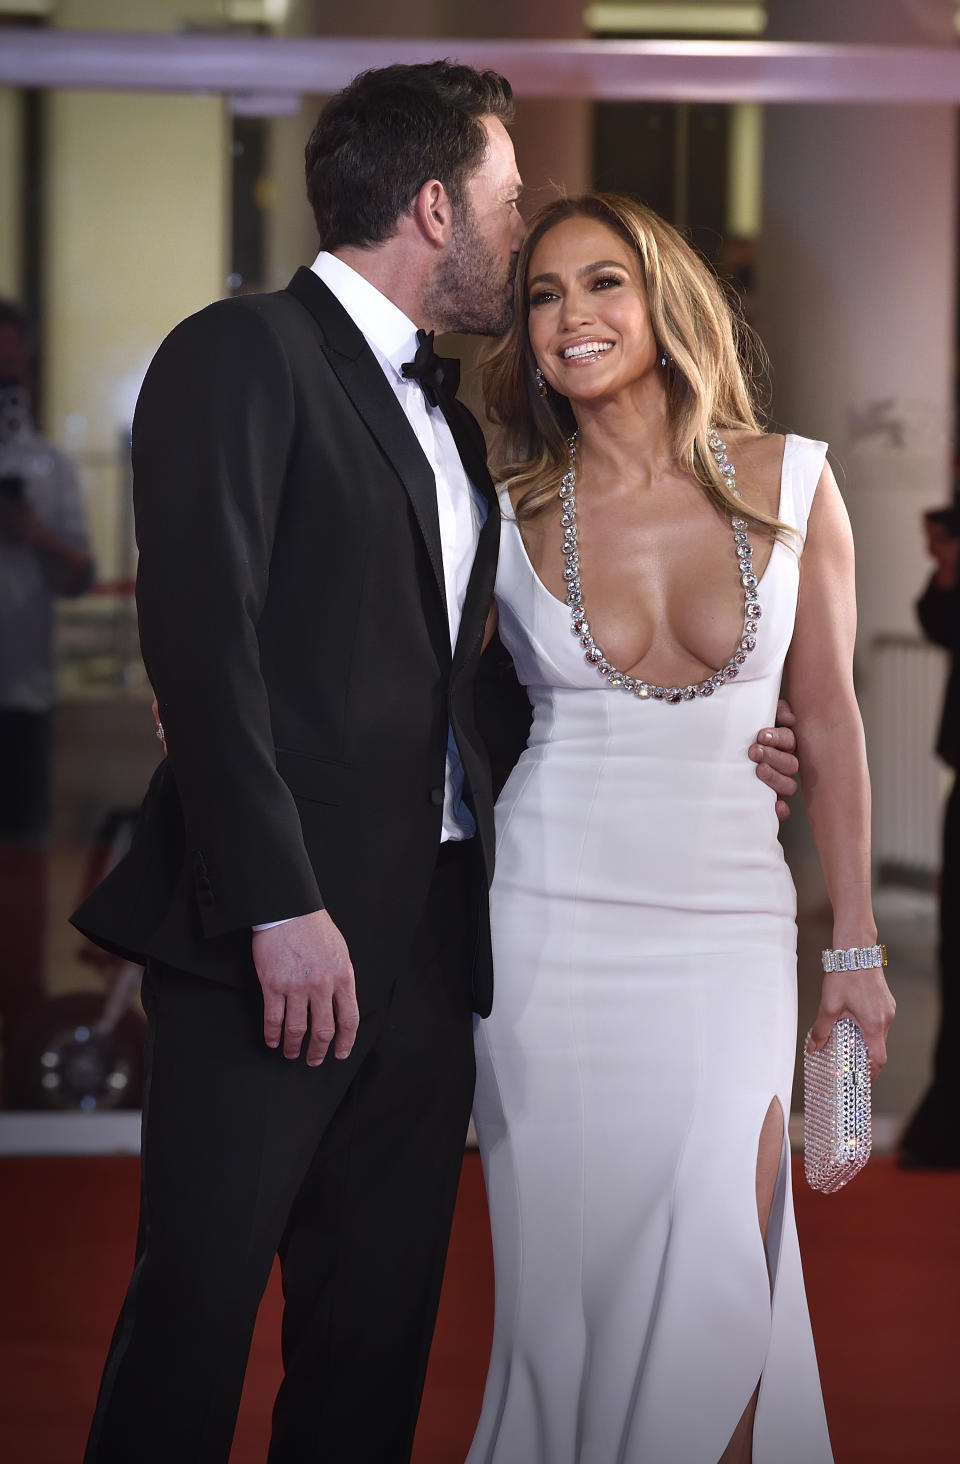 American actor Ben Affleck and american actress and singer Jennifer Lopez  at the 78 Venice International Film Festival 2021.  The last duel red carpet. Venice (Italy), September 10th, 2021 (Photo by Rocco Spaziani/Archivio Spaziani/Mondadori Portfolio via Getty Images)